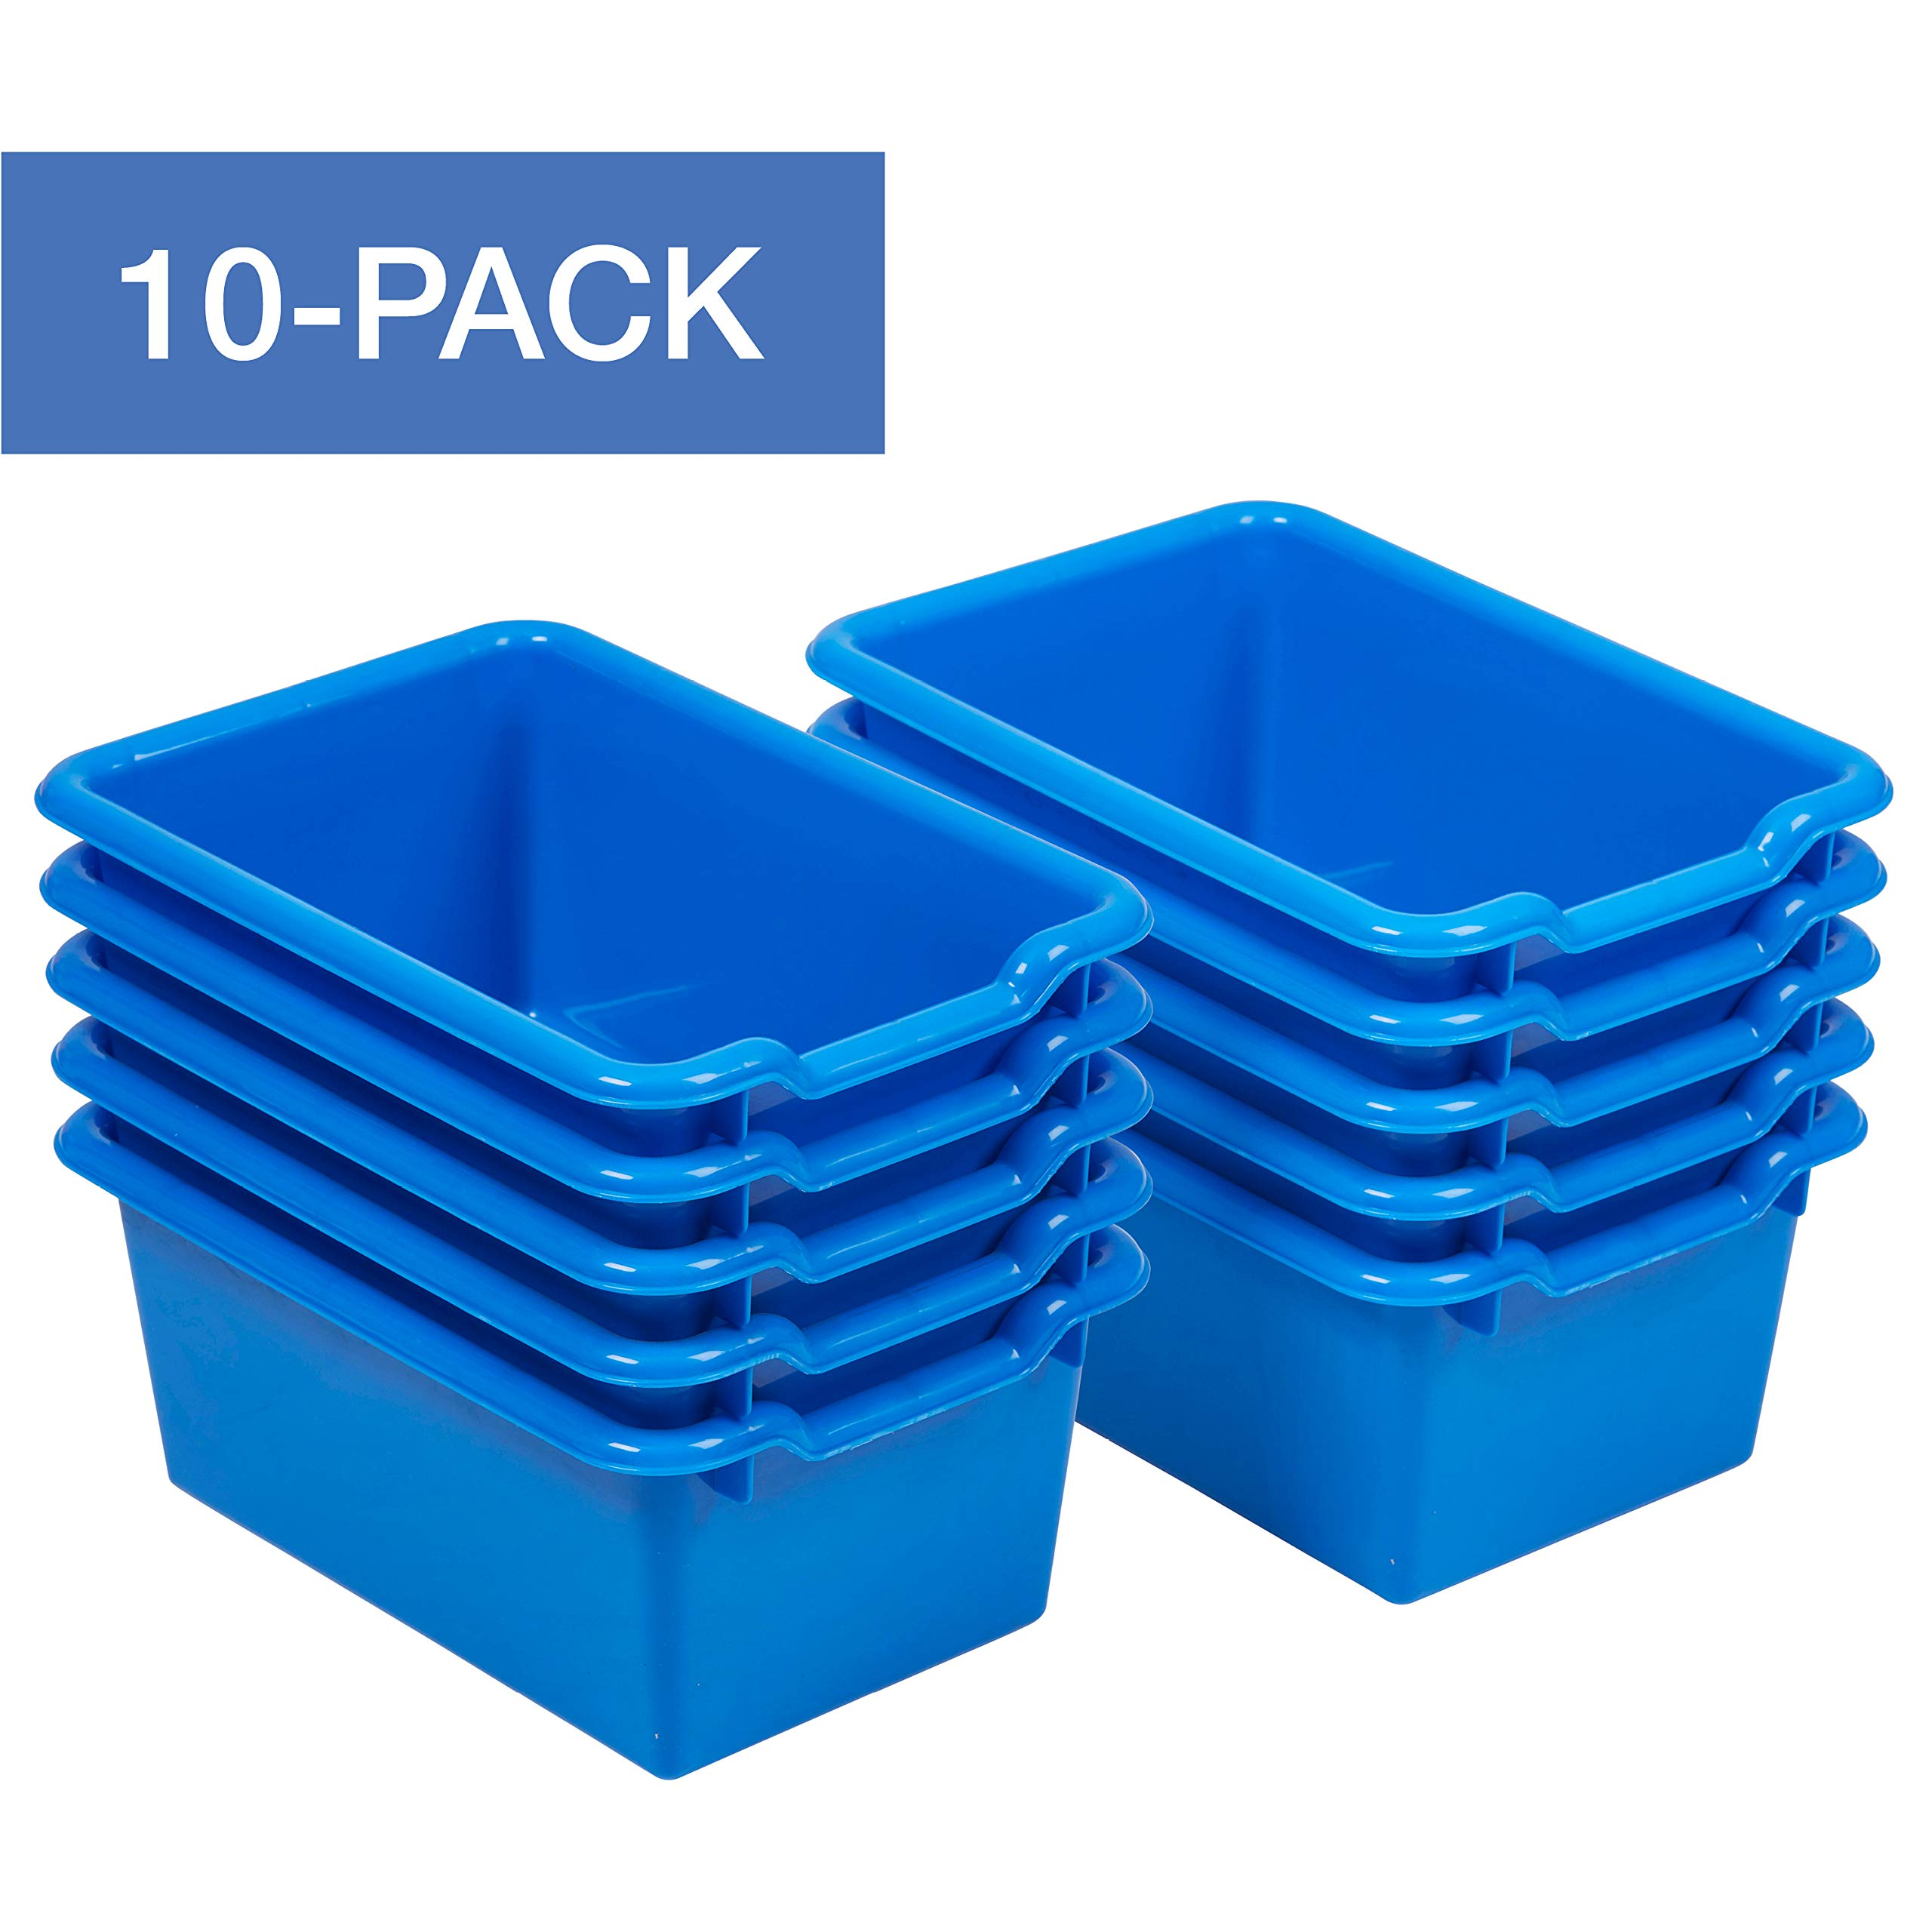 ECR4Kids Scoop-Front Storage Bins, Easy-to-Grip Design Storage Cubbies, Kid Friendly and Built to Last, Pairs with ECR4Kids Storage Units, 10-Pack, Blue by ECR4Kids